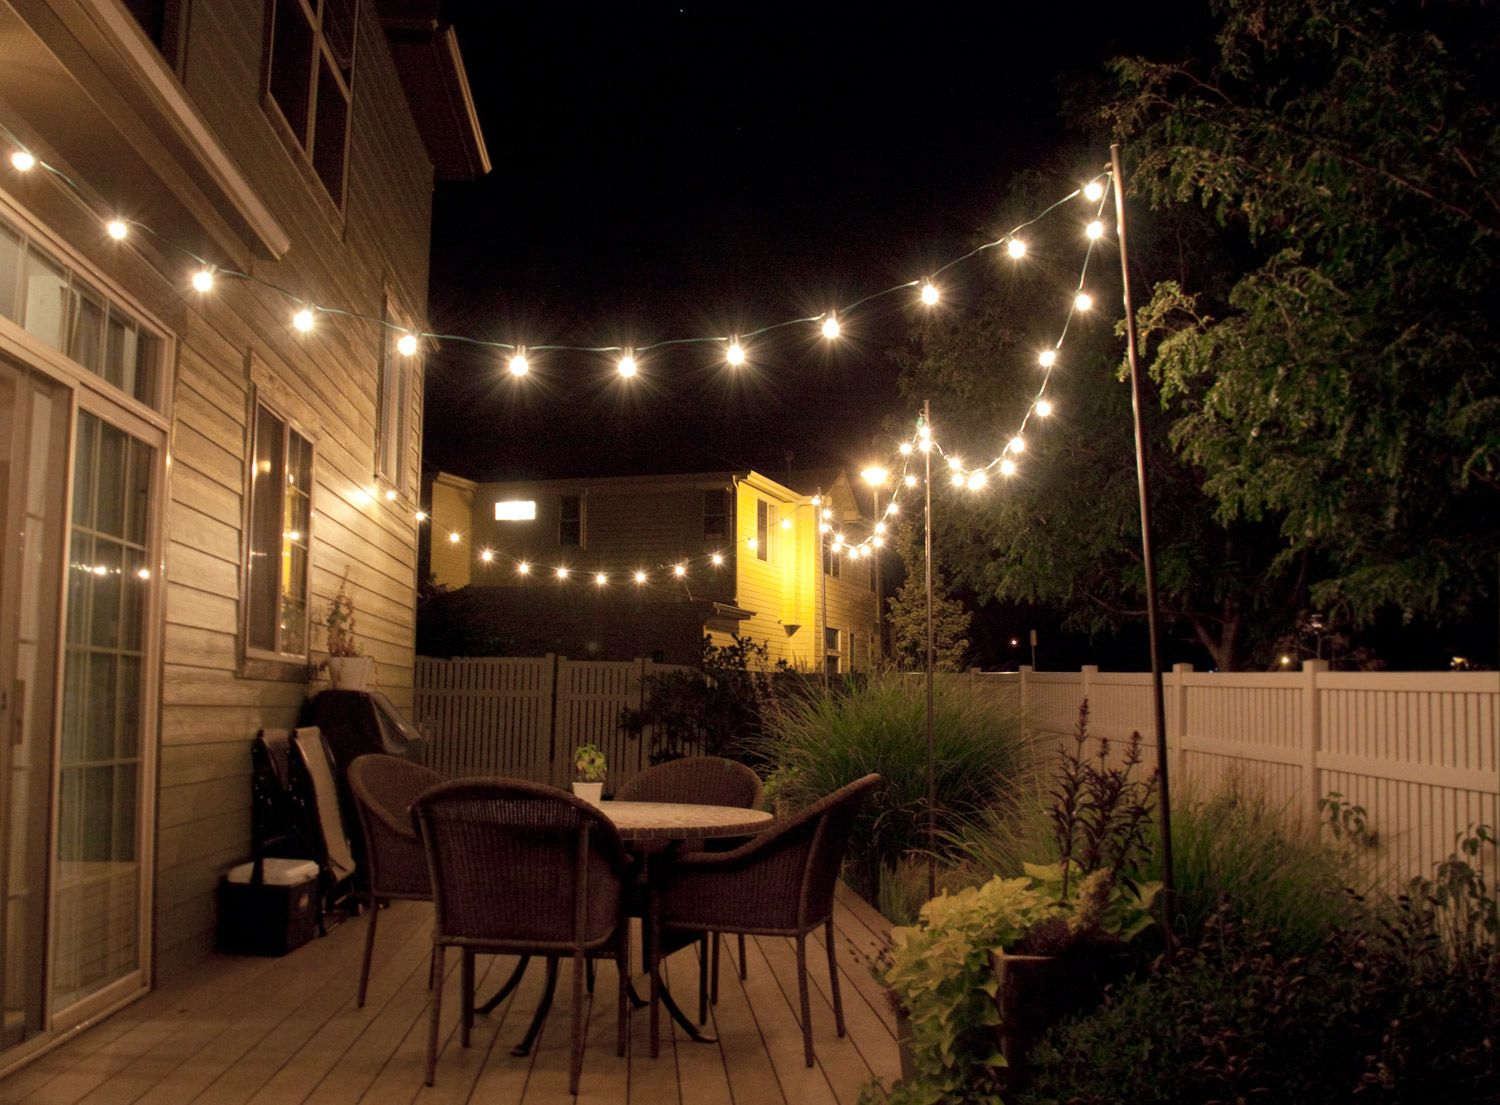 String Patio Lights Inspiration How To Make Inexpensive Poles To Hang String Lights On  Café Style